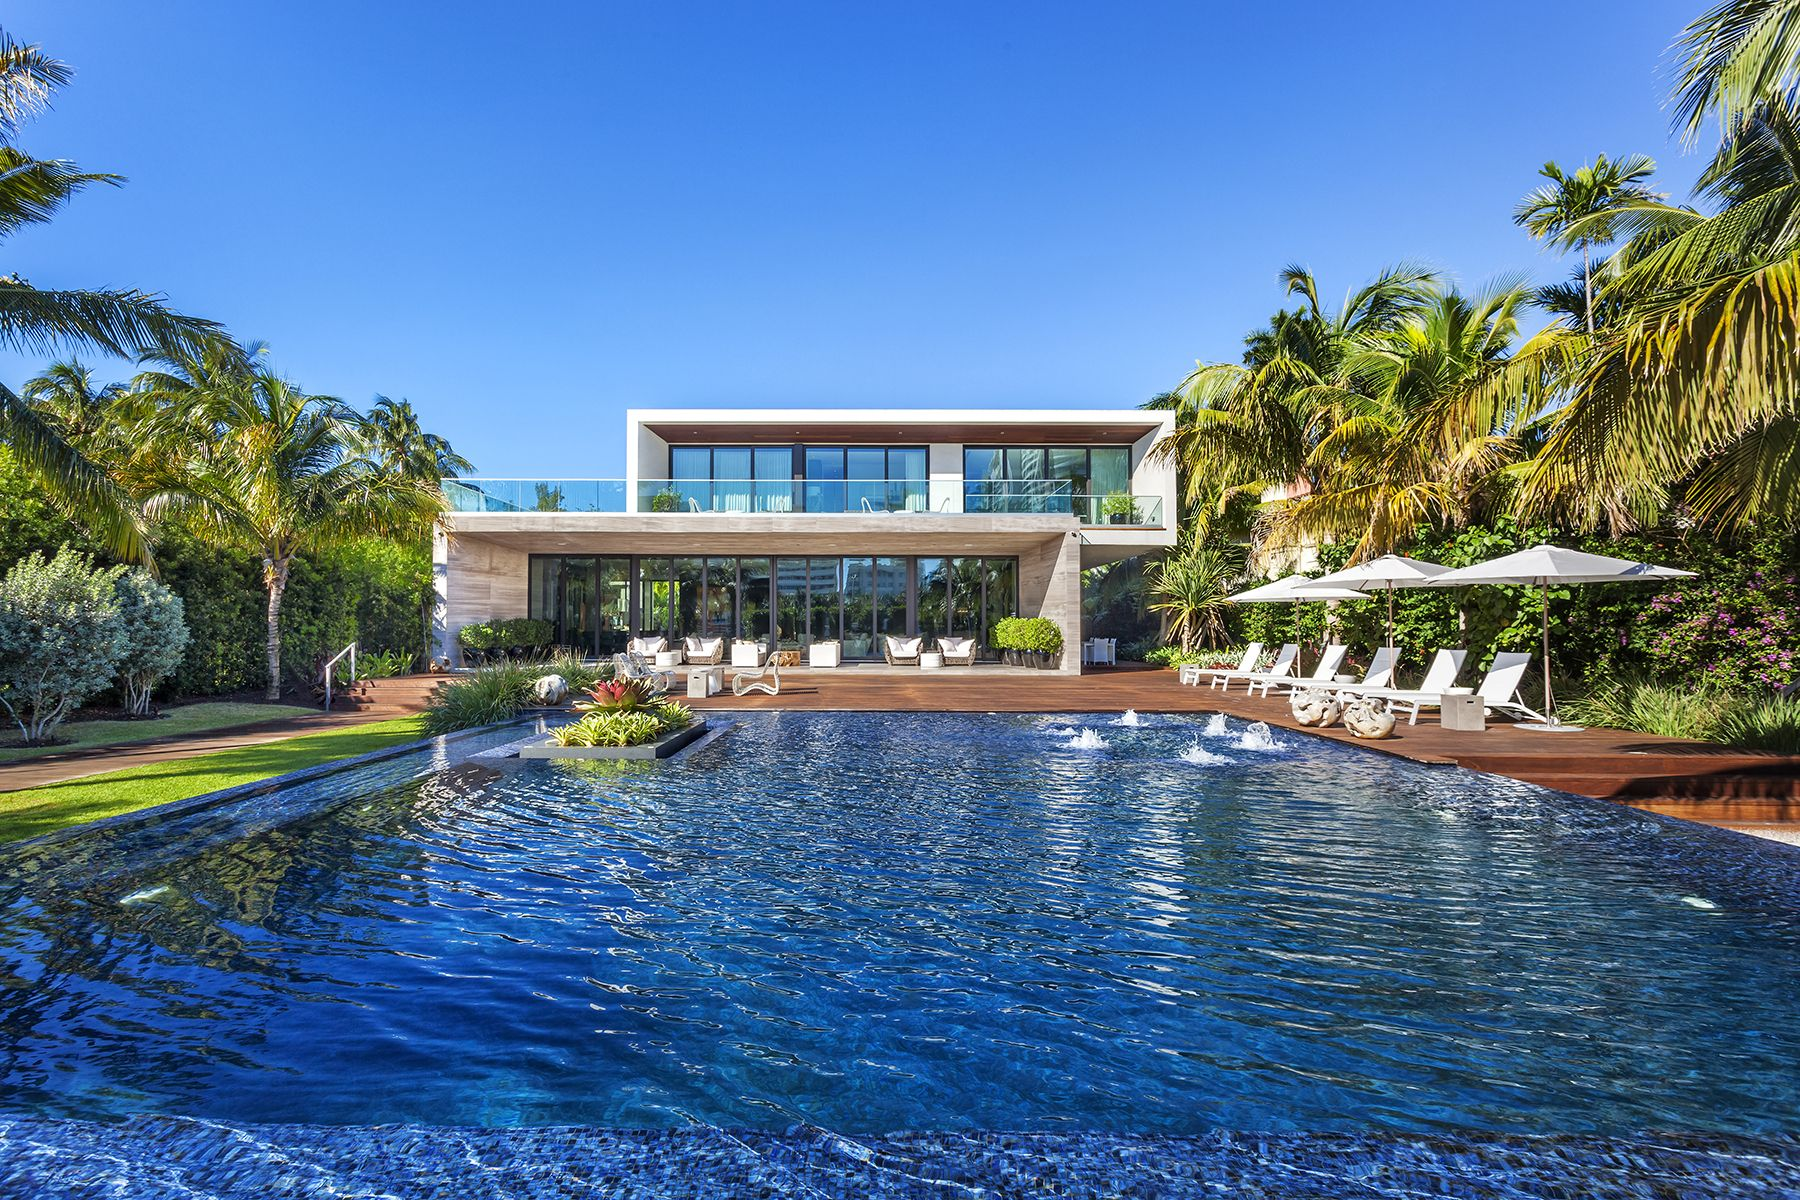 4395 Pine Tree Drive $22.95 Million Miami Beach